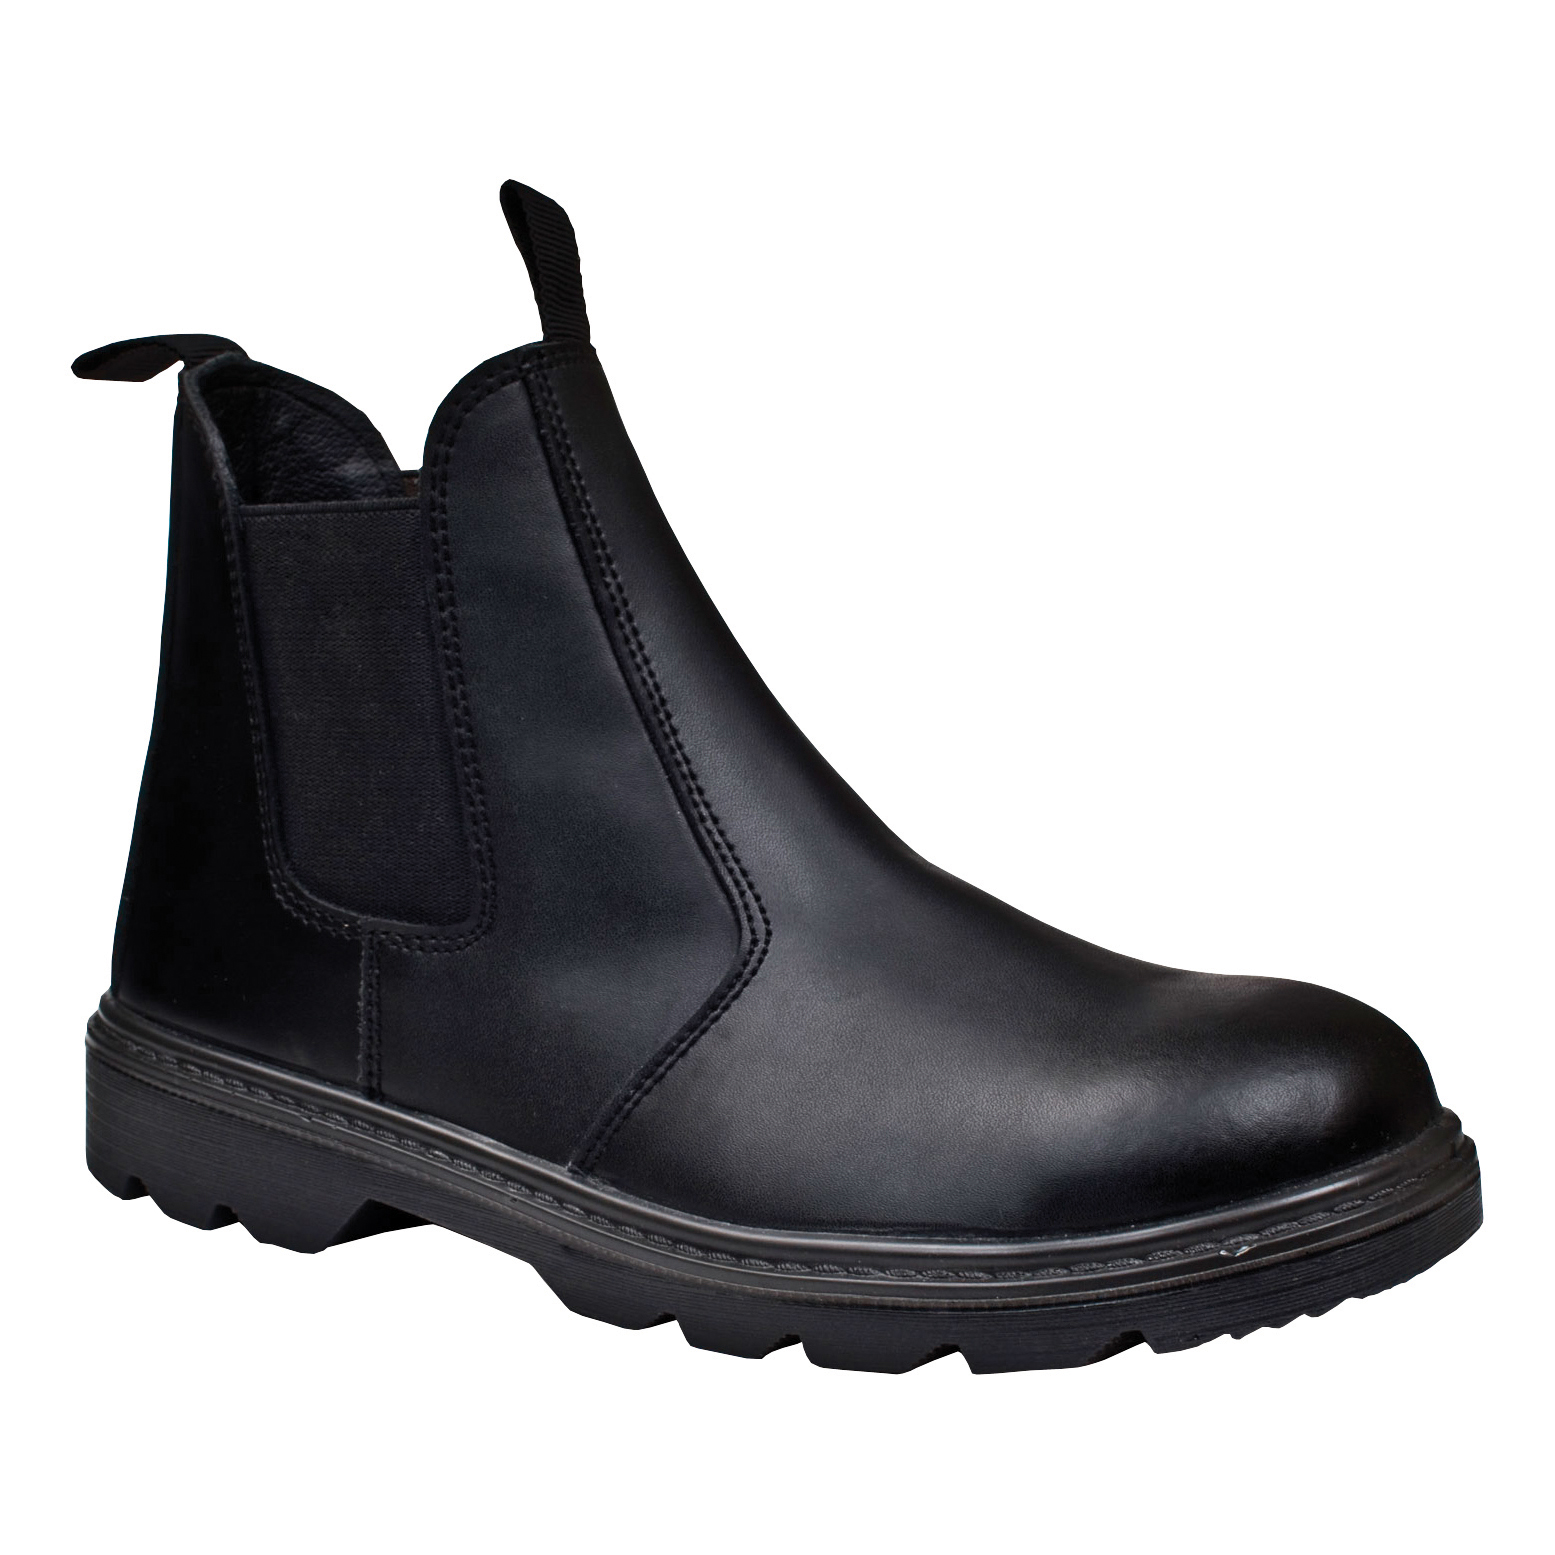 Footwear Click Footwear Dealer Boot PU/Leather Steel Toecap Size 11 Black Ref CF16BL11 *Approx 3 Day Leadtime*